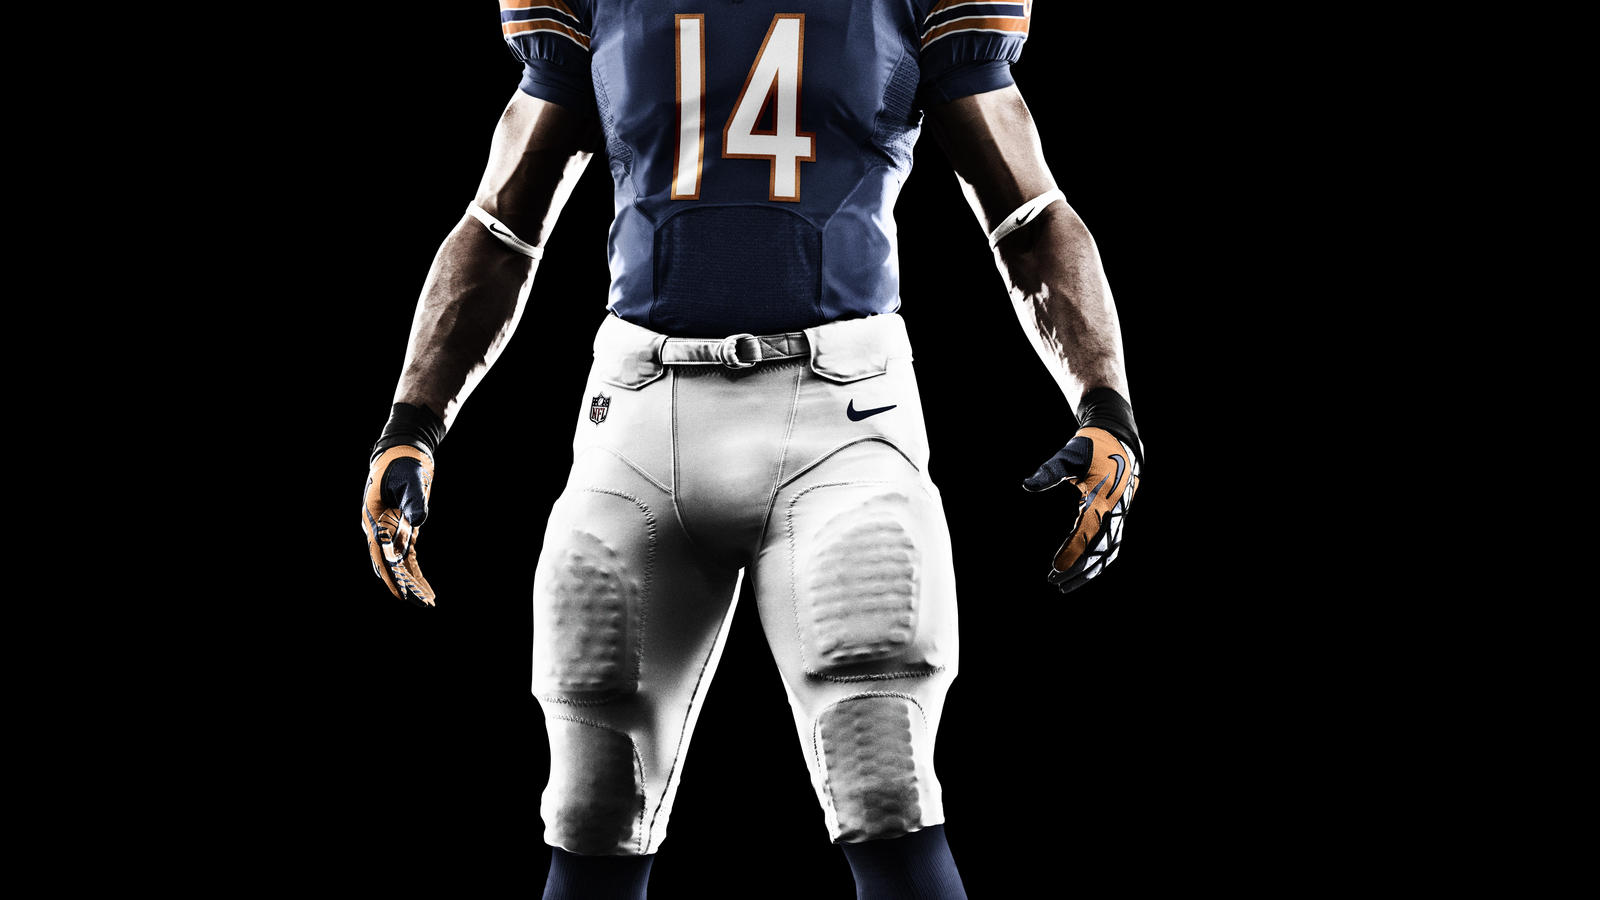 SU12_AT_NFL_UNIFORM_FRONT_BEARS